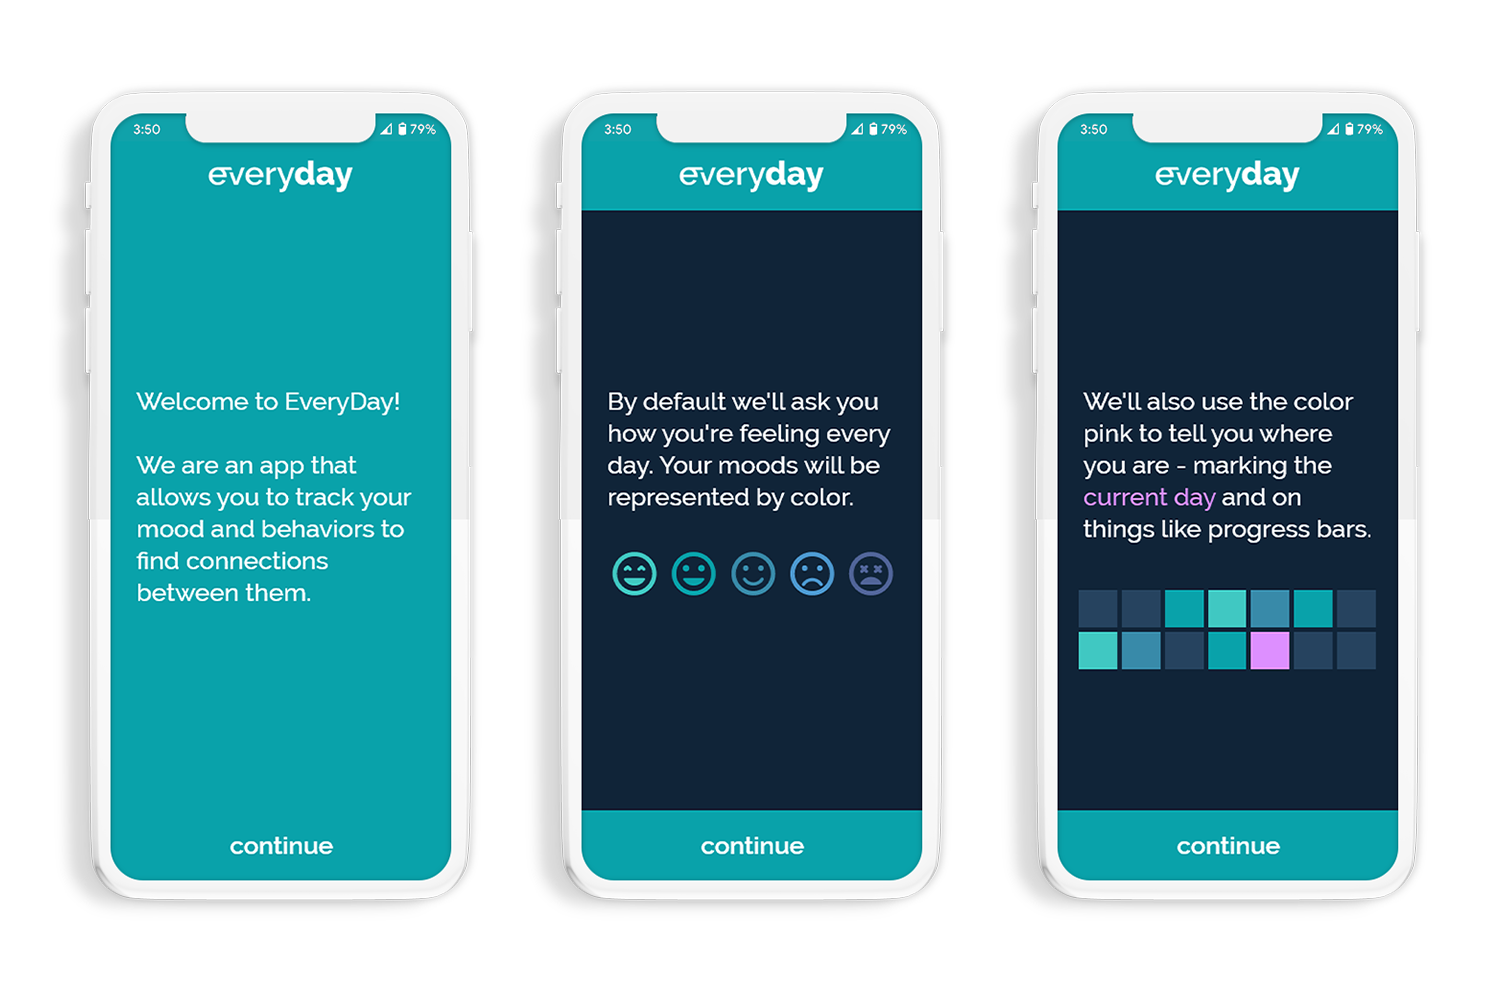 mobile mockups of Everyday's intro user flow